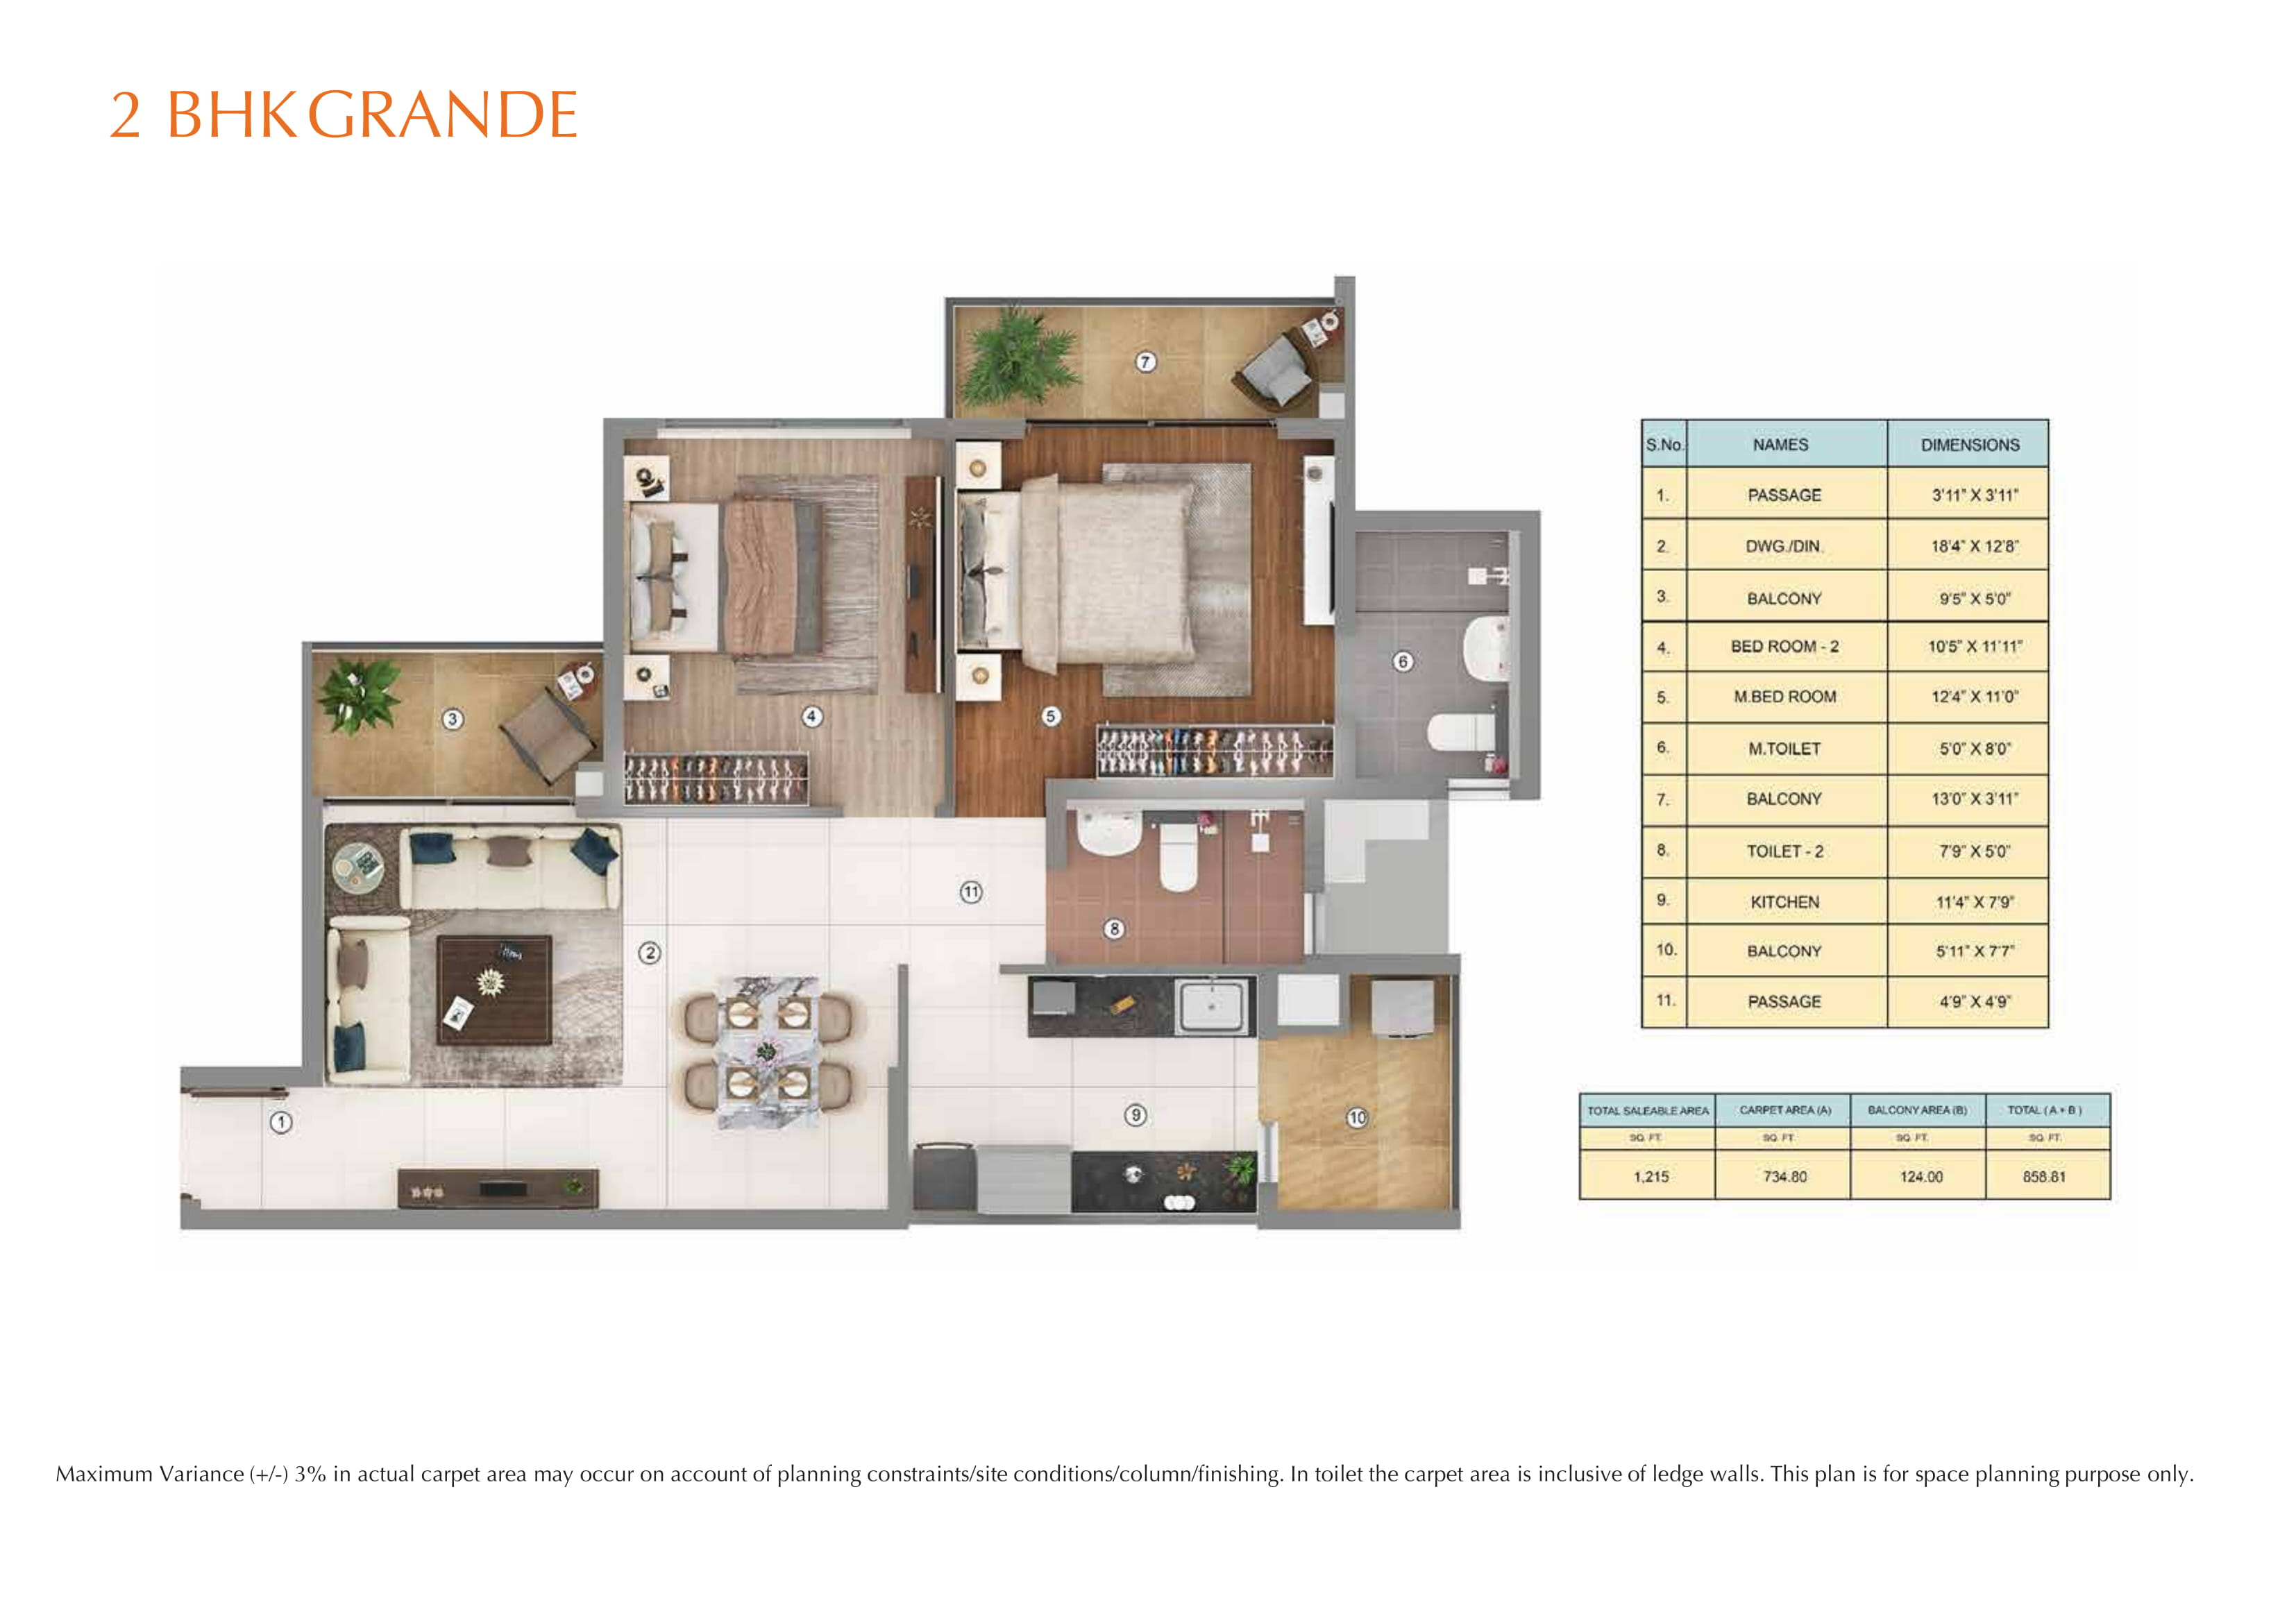 2BHK GRANDE Layout Plan